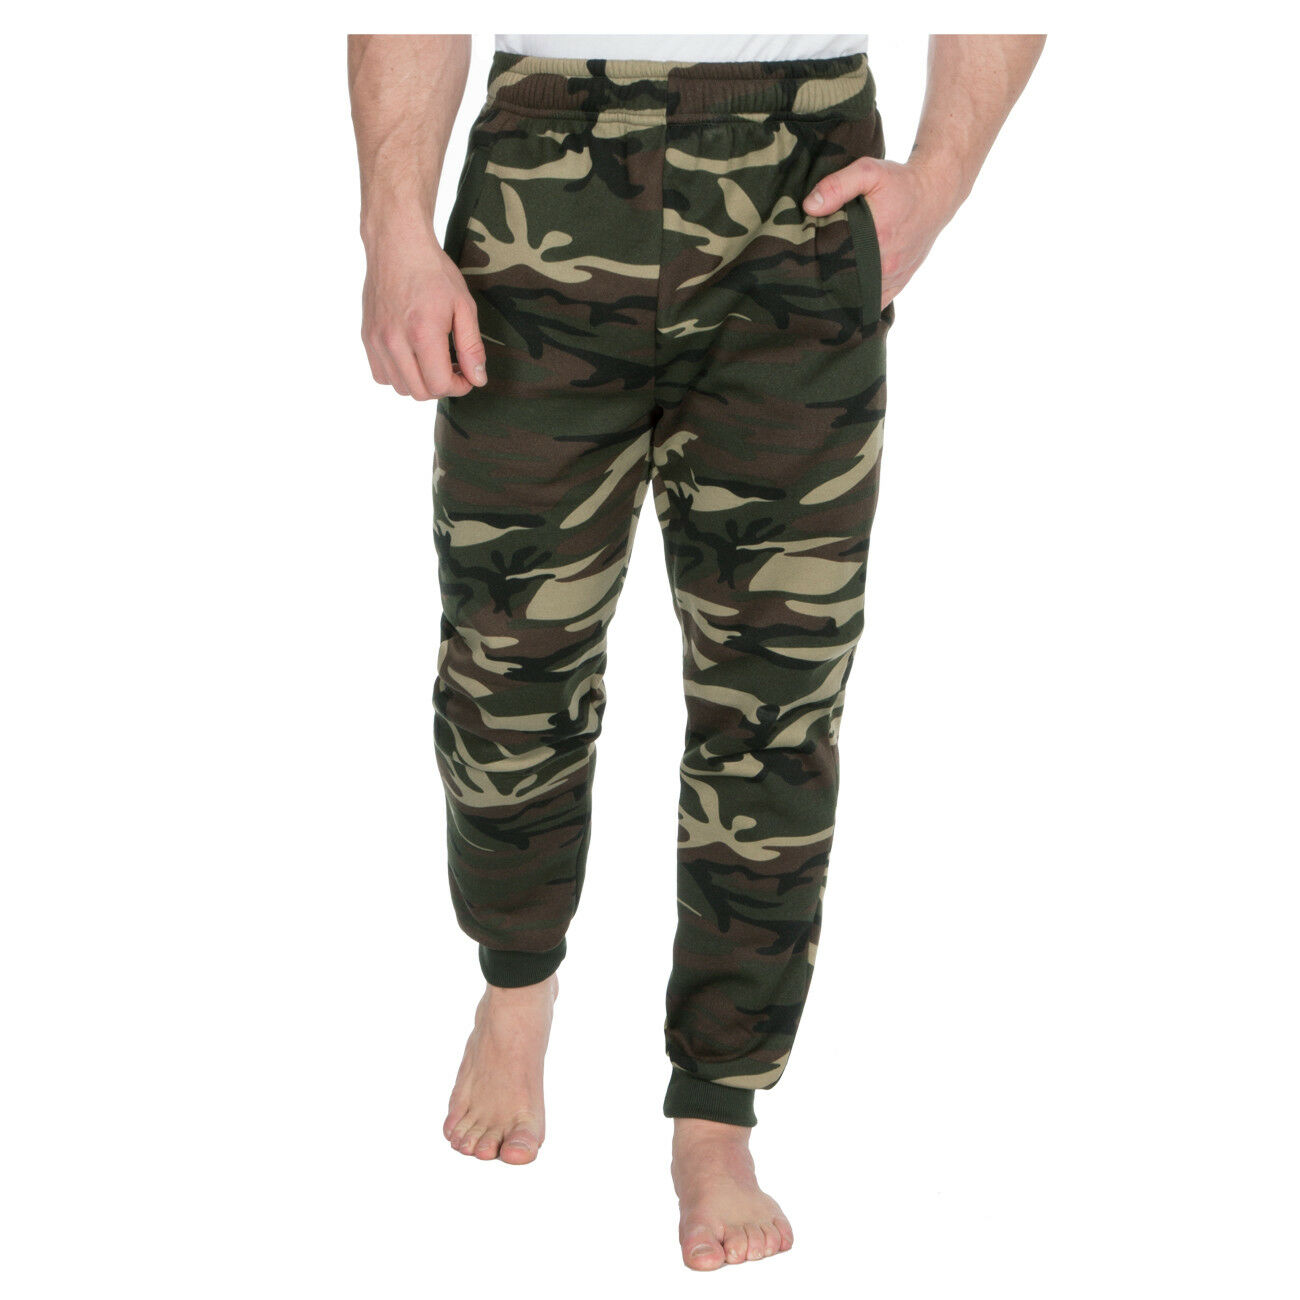 Photno Mens Joggers Casual Slim Fit Sweatpants Workout Exercise Pants Big and Tall Elastic Waist Trousers